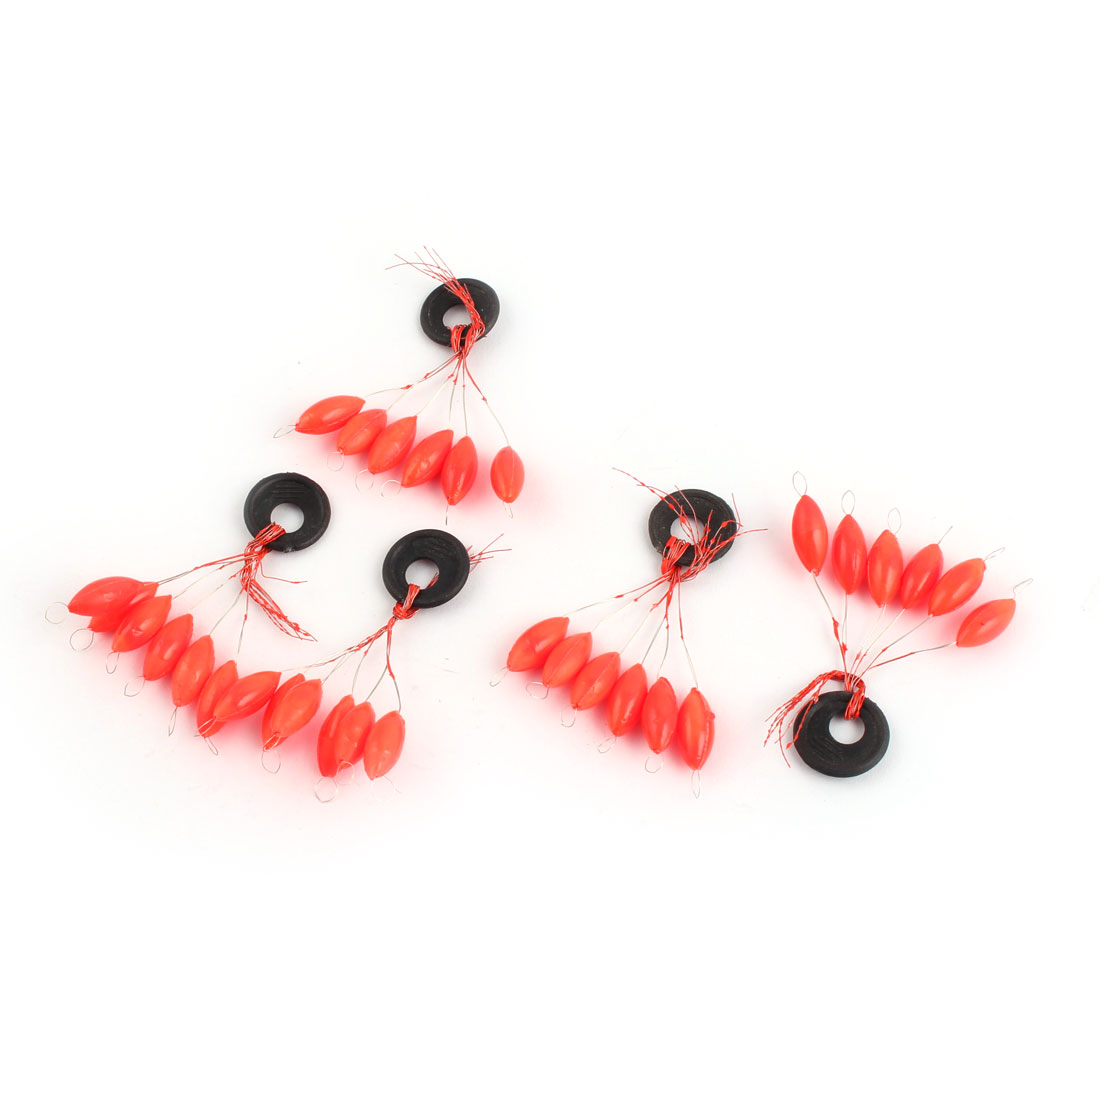 5 x 2# Oval Orange Red 6 in 1 Floater Stopper Fishing Tackle Tool